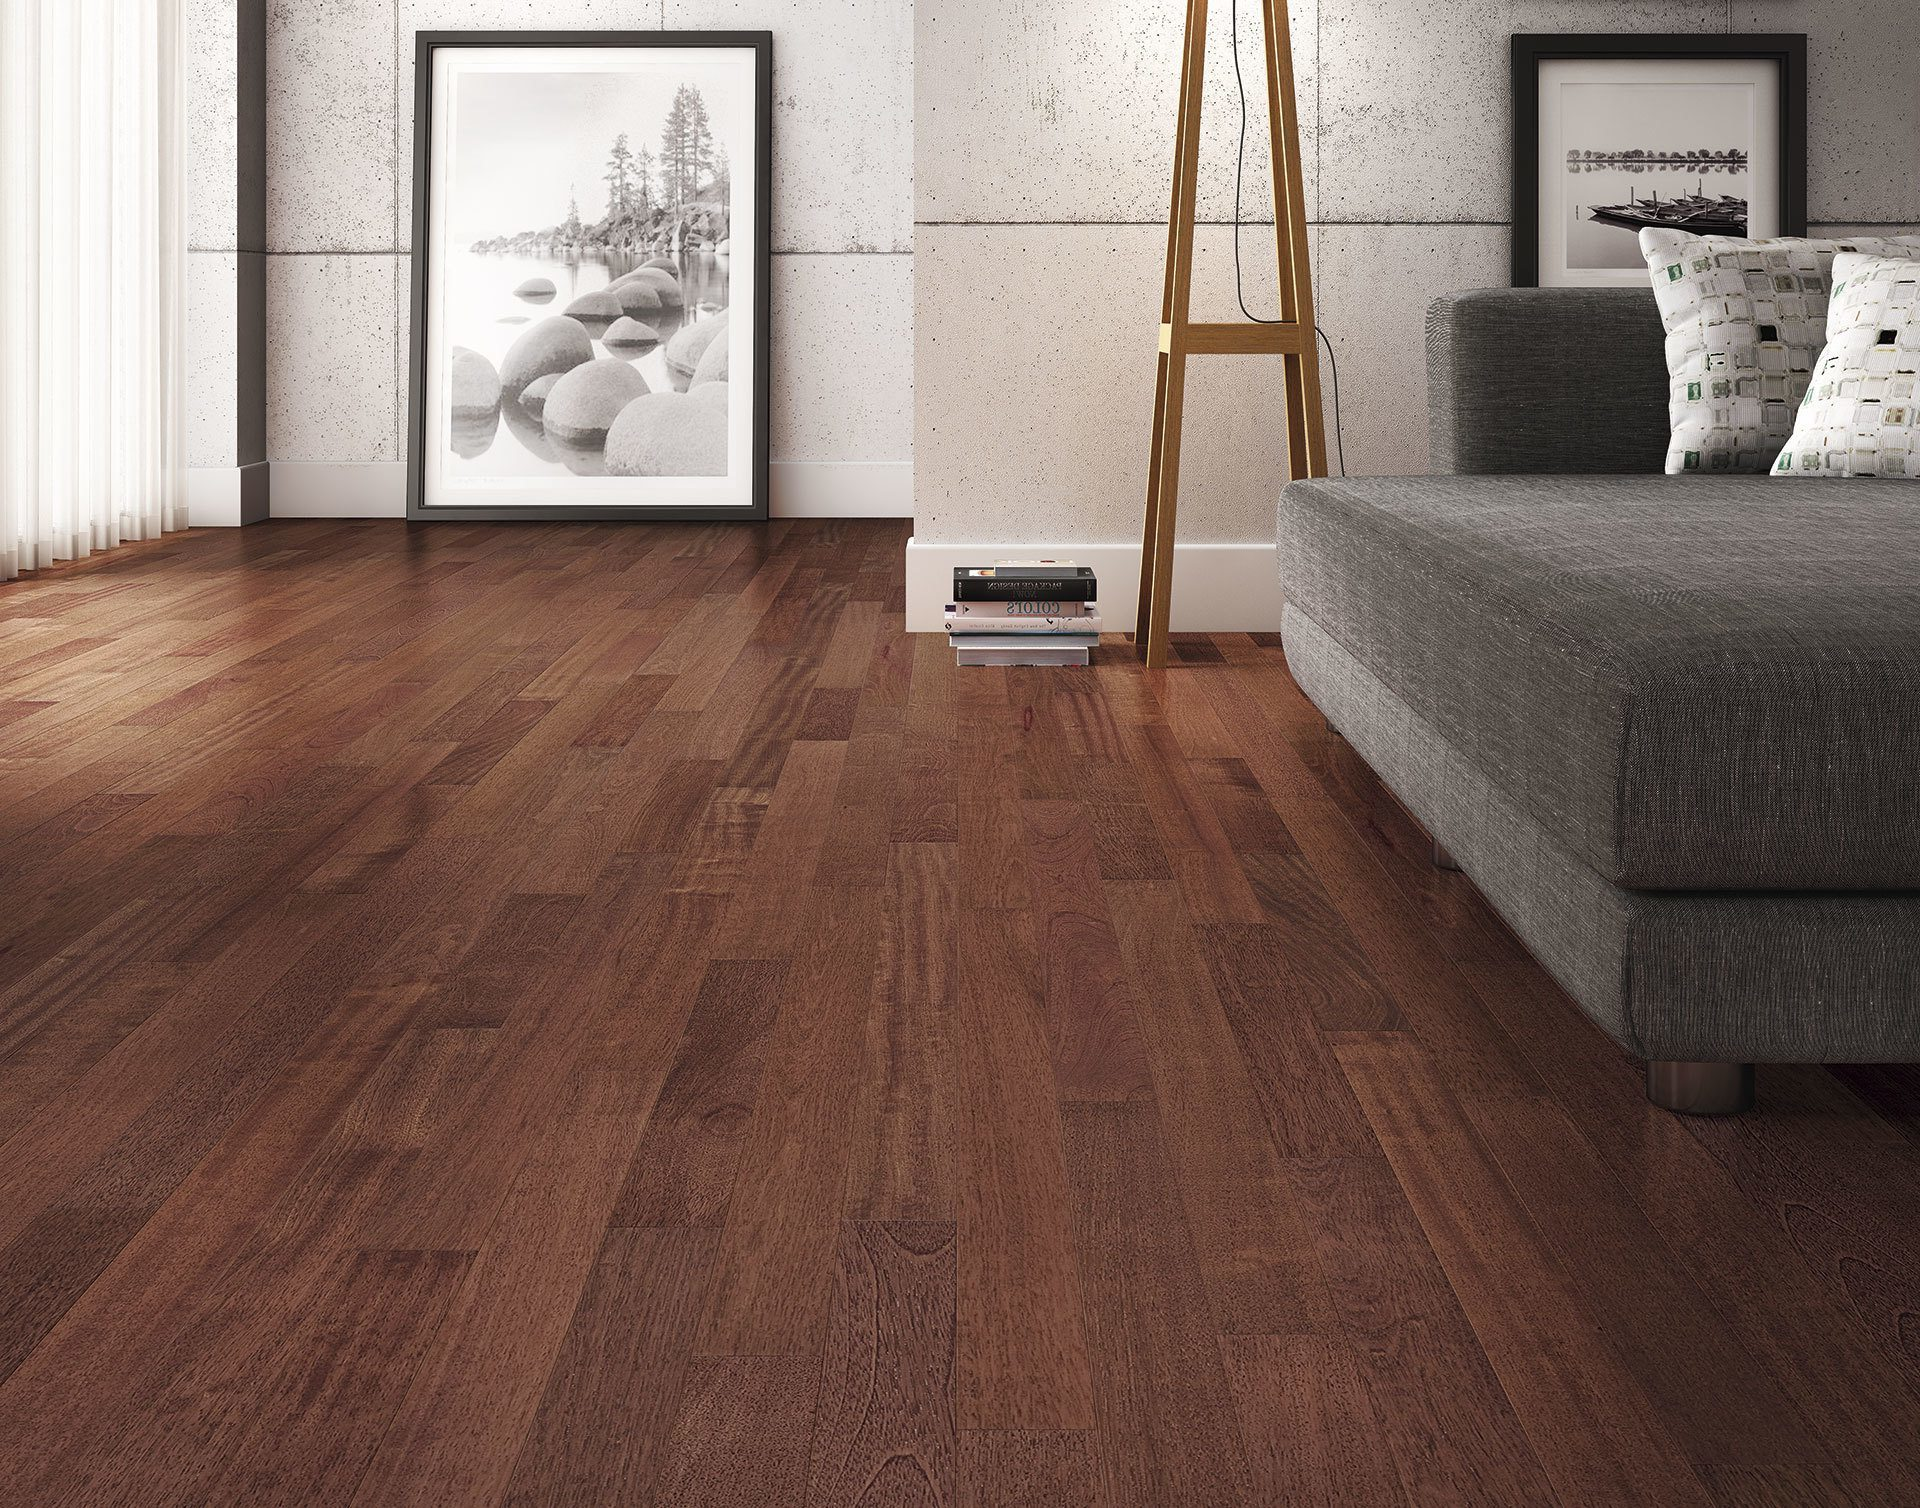 Cleaning engineered hardwood floors tips in easiest way for Cherry flooring pros and cons